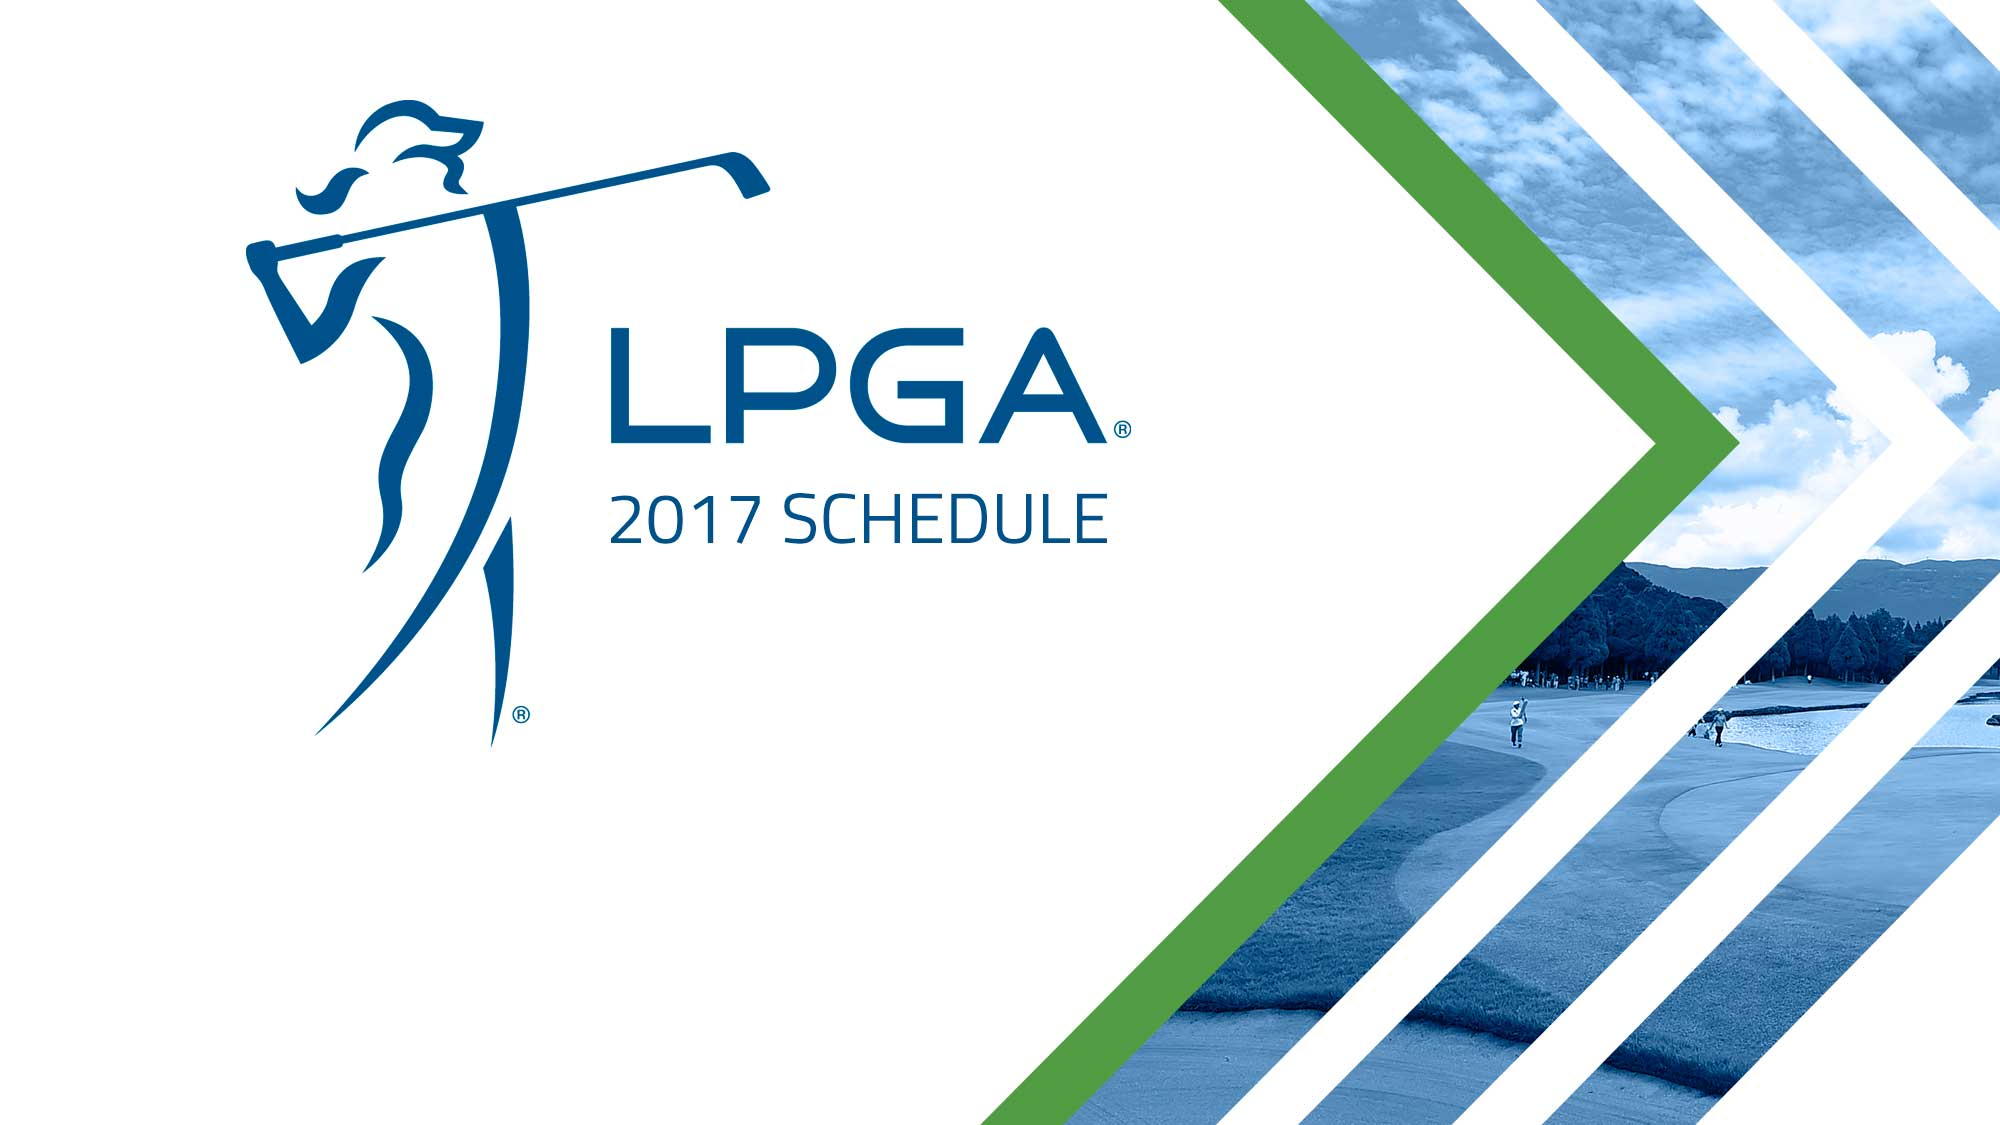 NBC Sports Group Kicks Off 2017 LPGA Season this week with the Pure Silk-Bahamas LPGA Classic